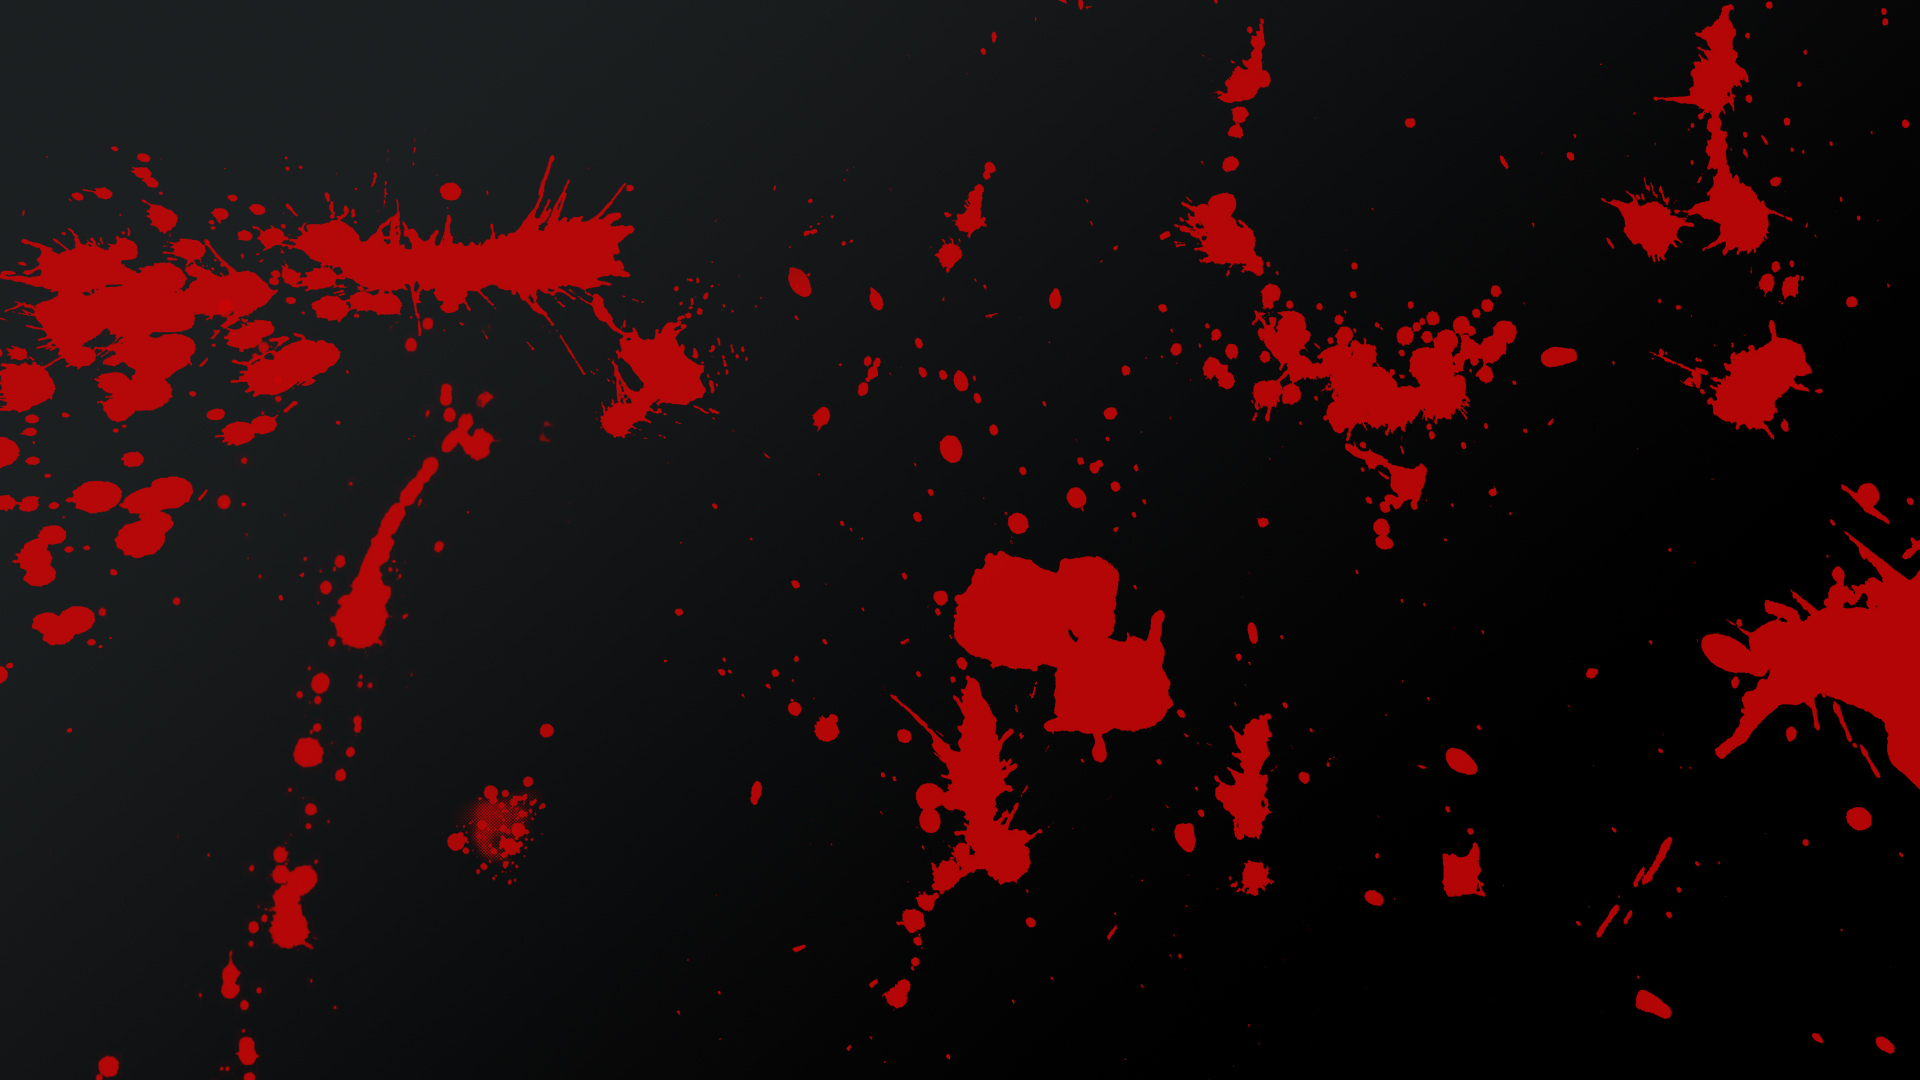 Blood splatter by pudgey. Background clipart library